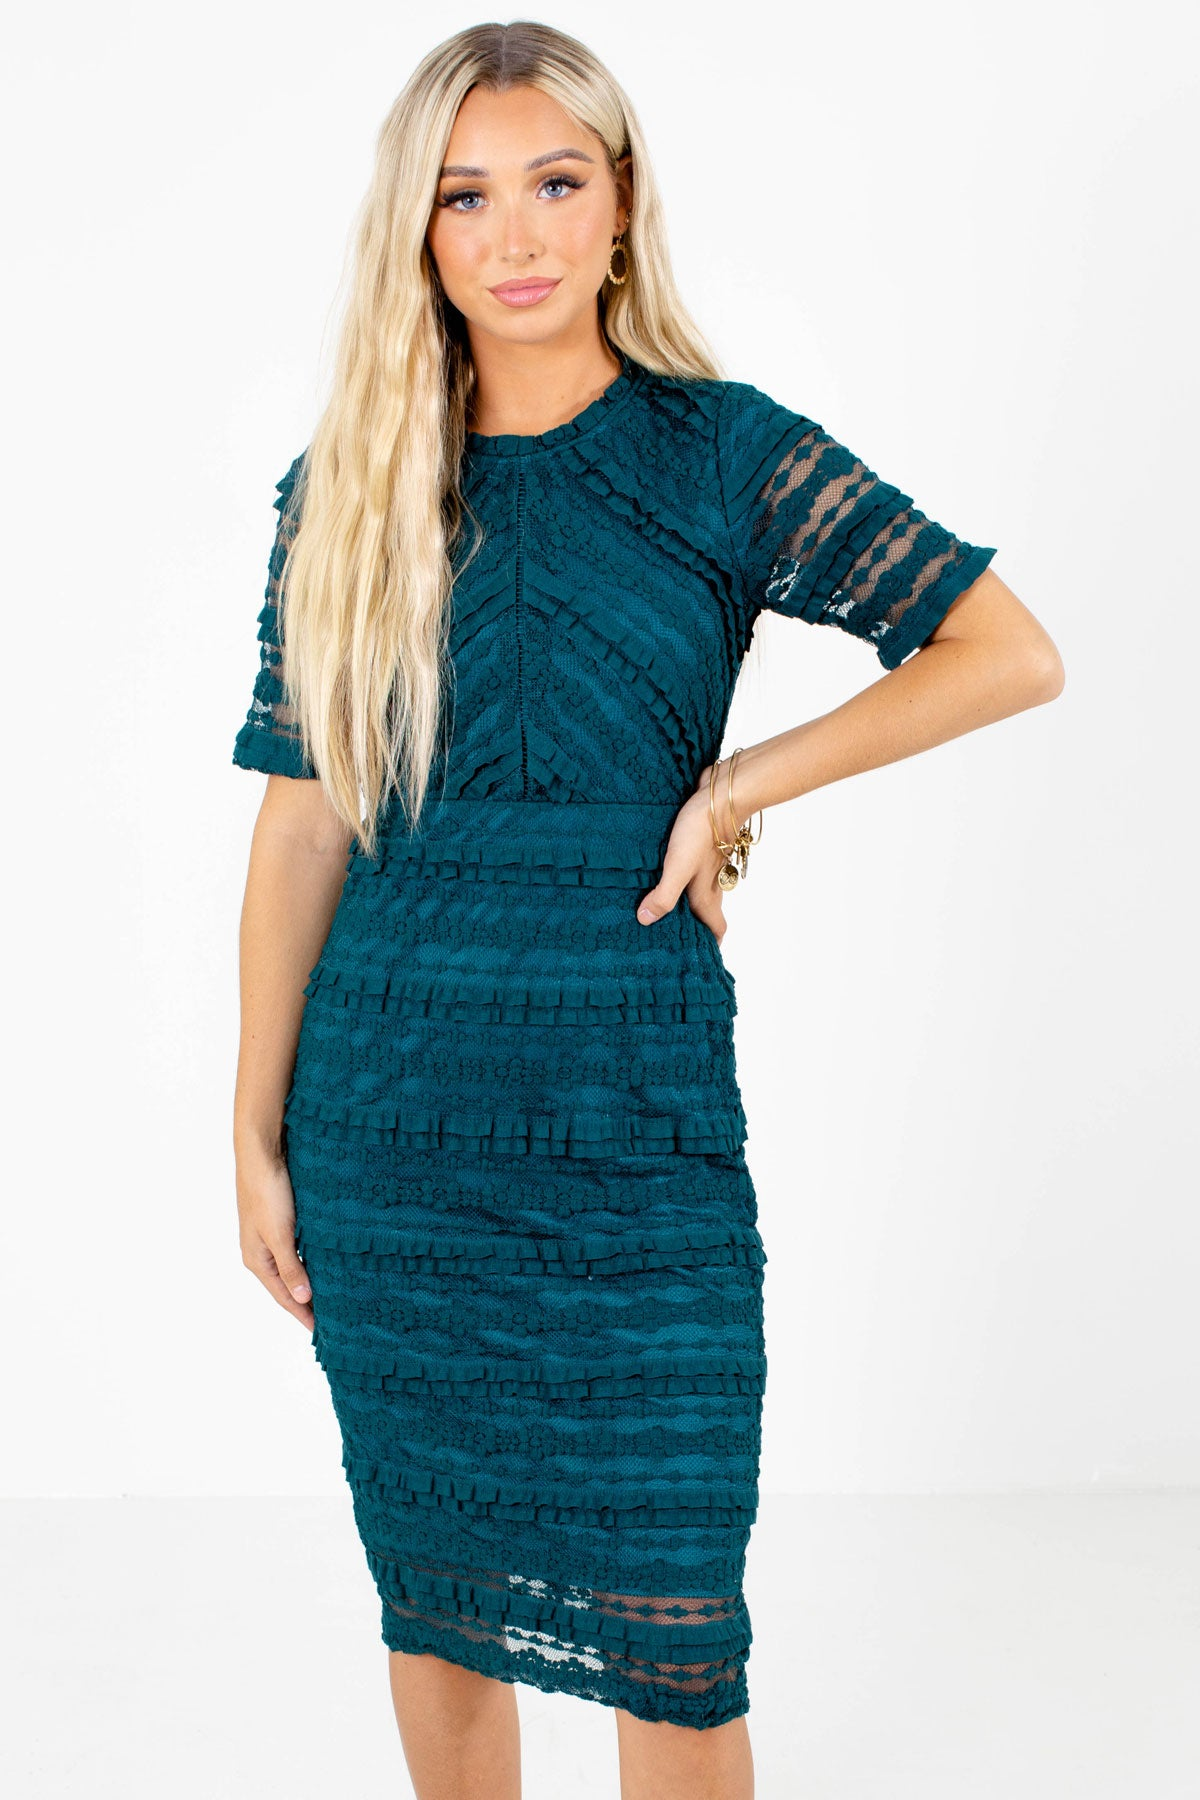 Teal Knee-Length Boutique Dresses for Women